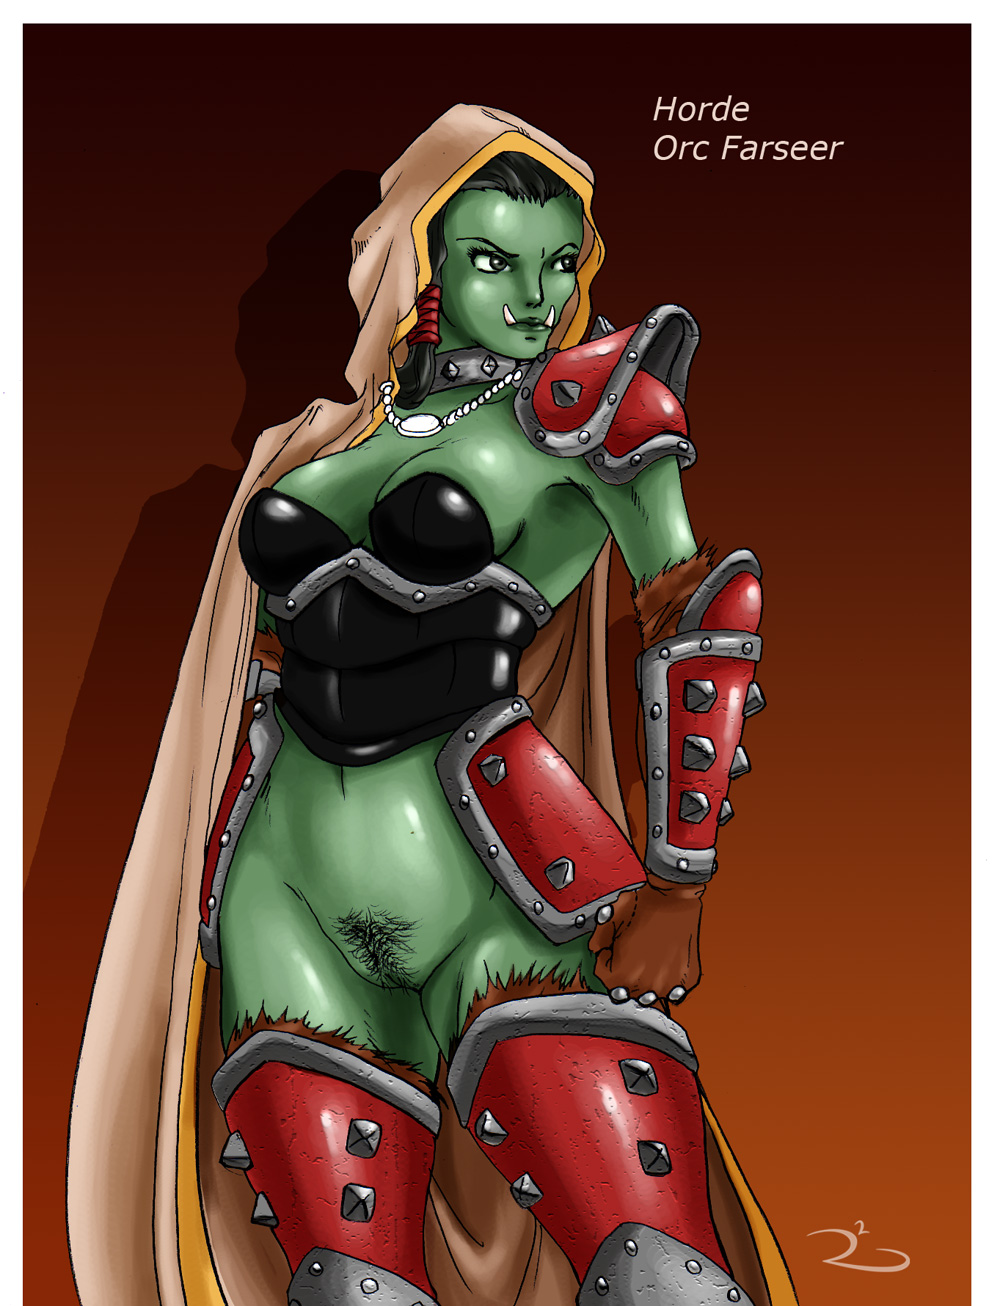 female world warcraft orc porn of Code geass pizza hut product placement